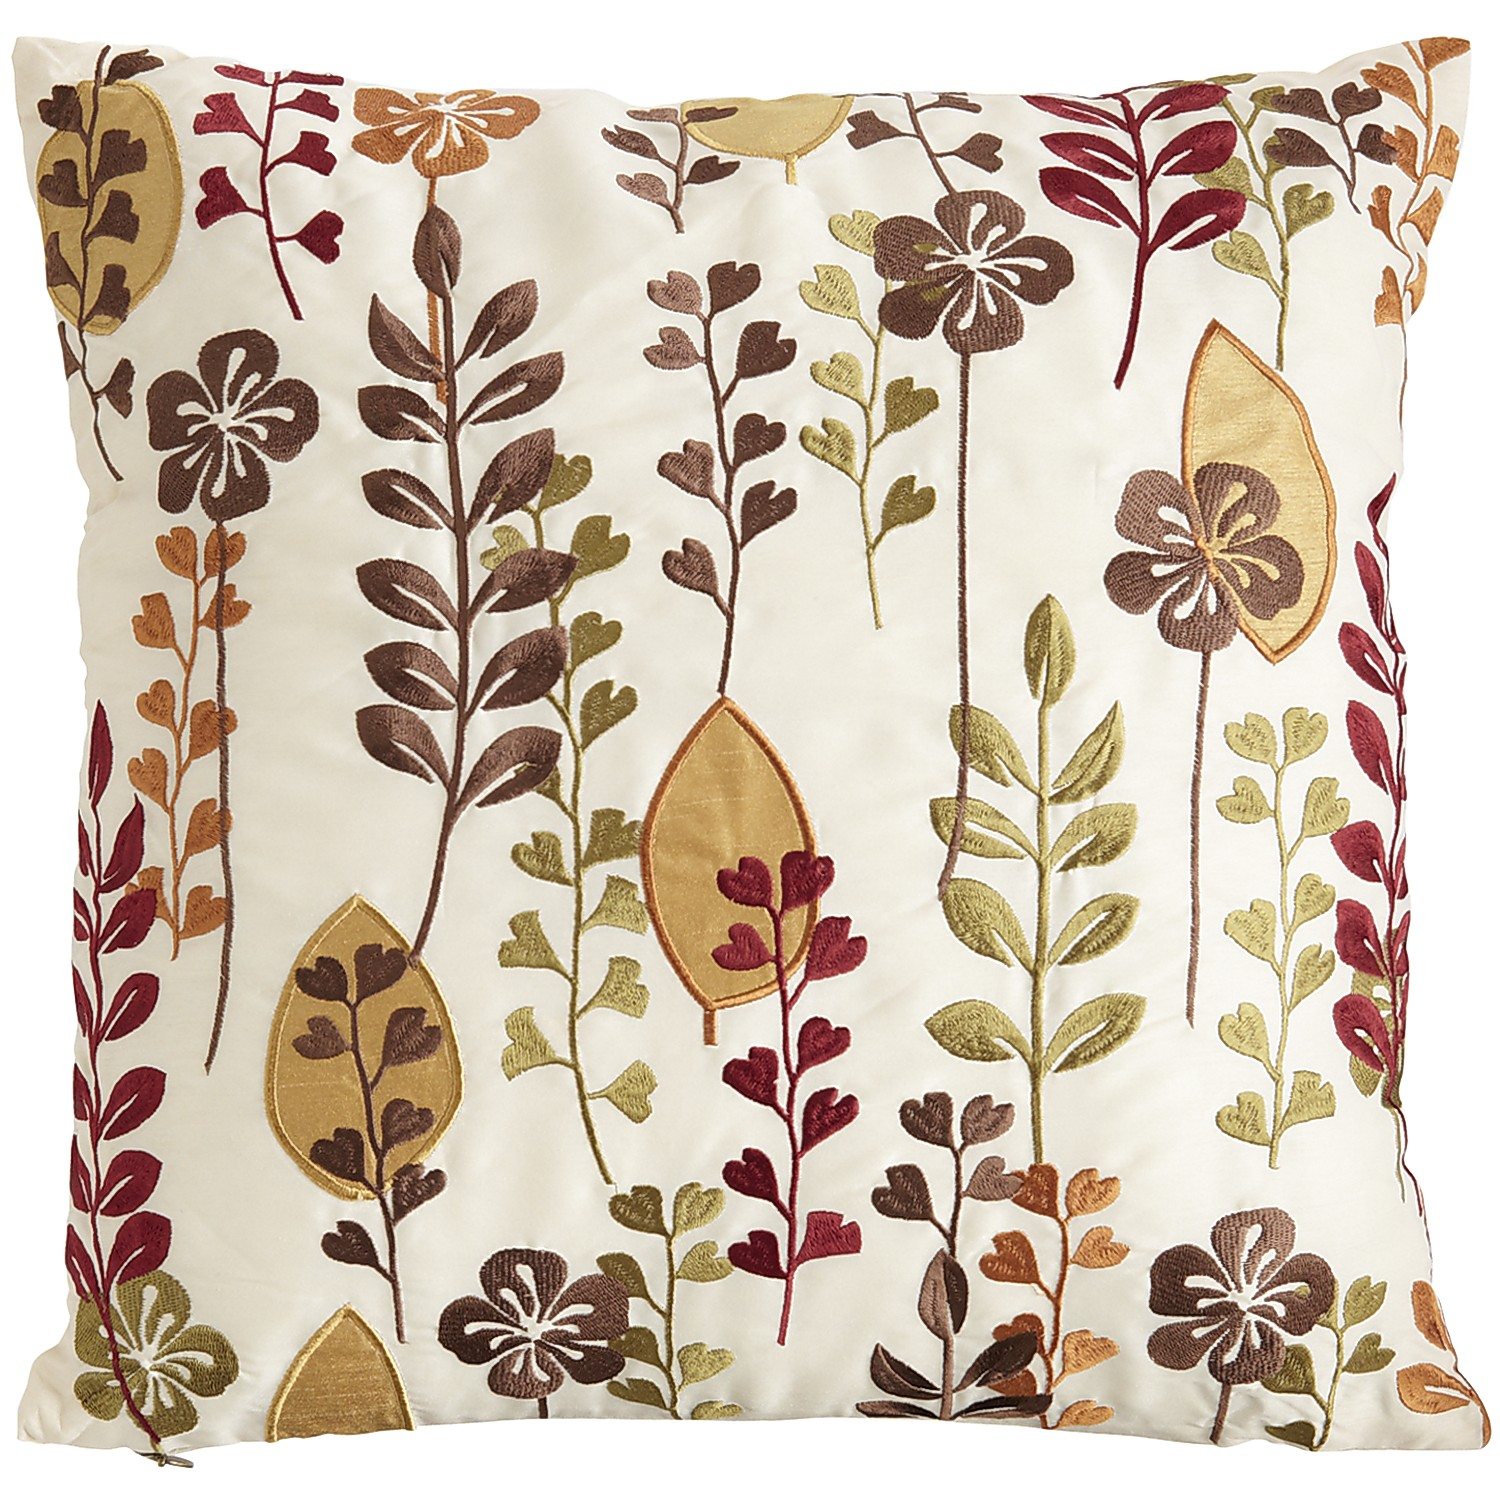 Floral Leaves Pillow